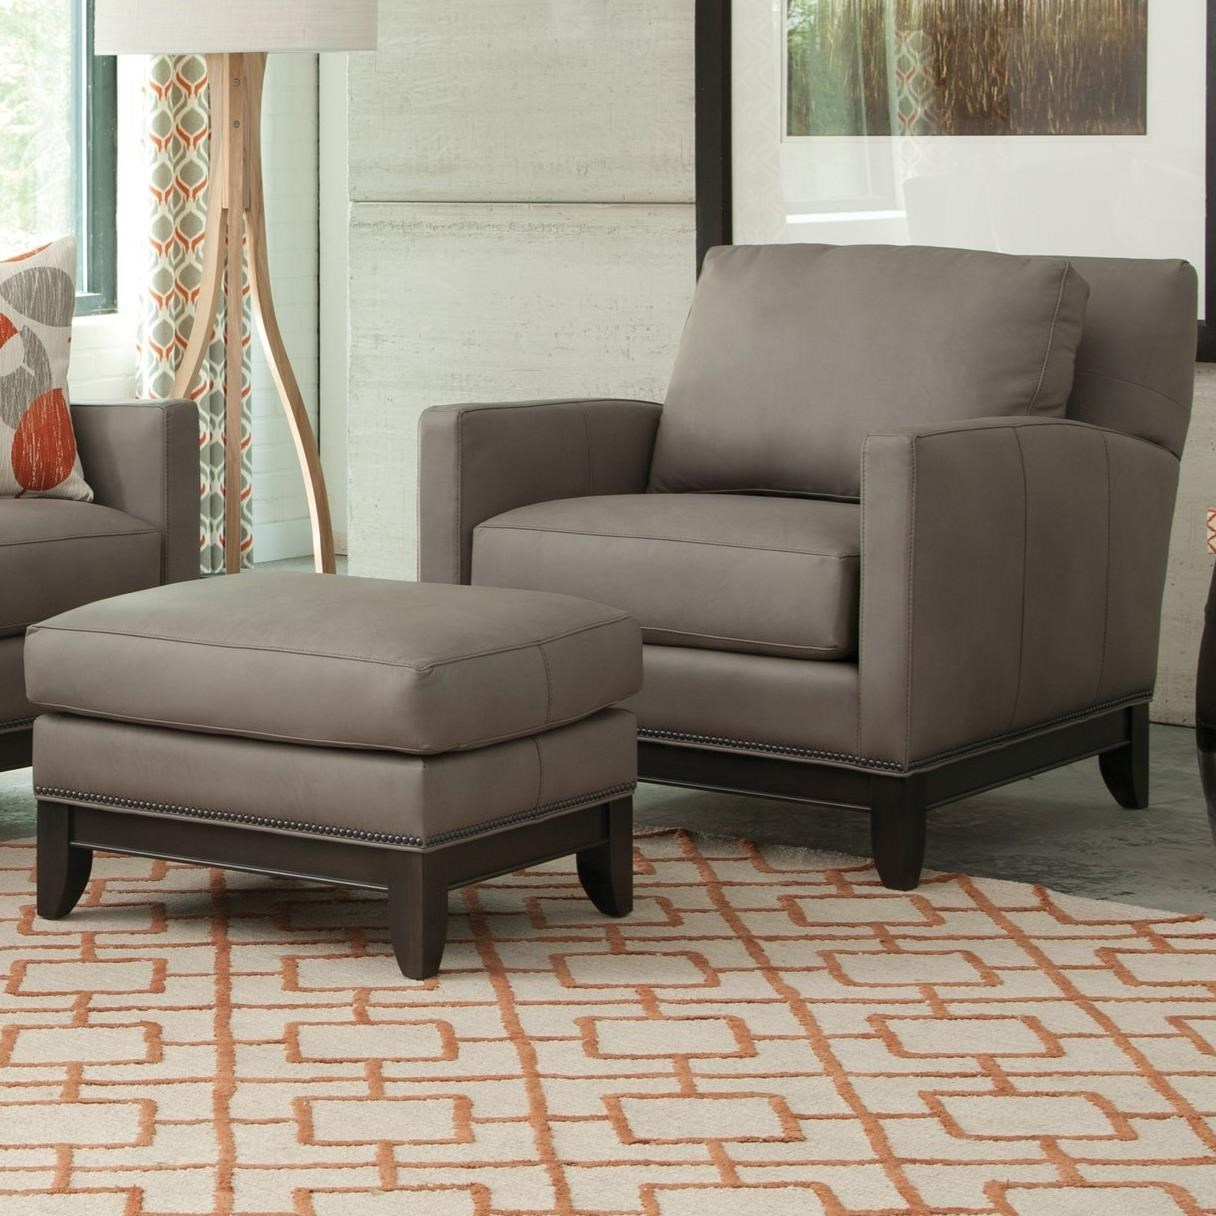 238 Chair and Ottoman Set by Smith Brothers at Rooms for Less